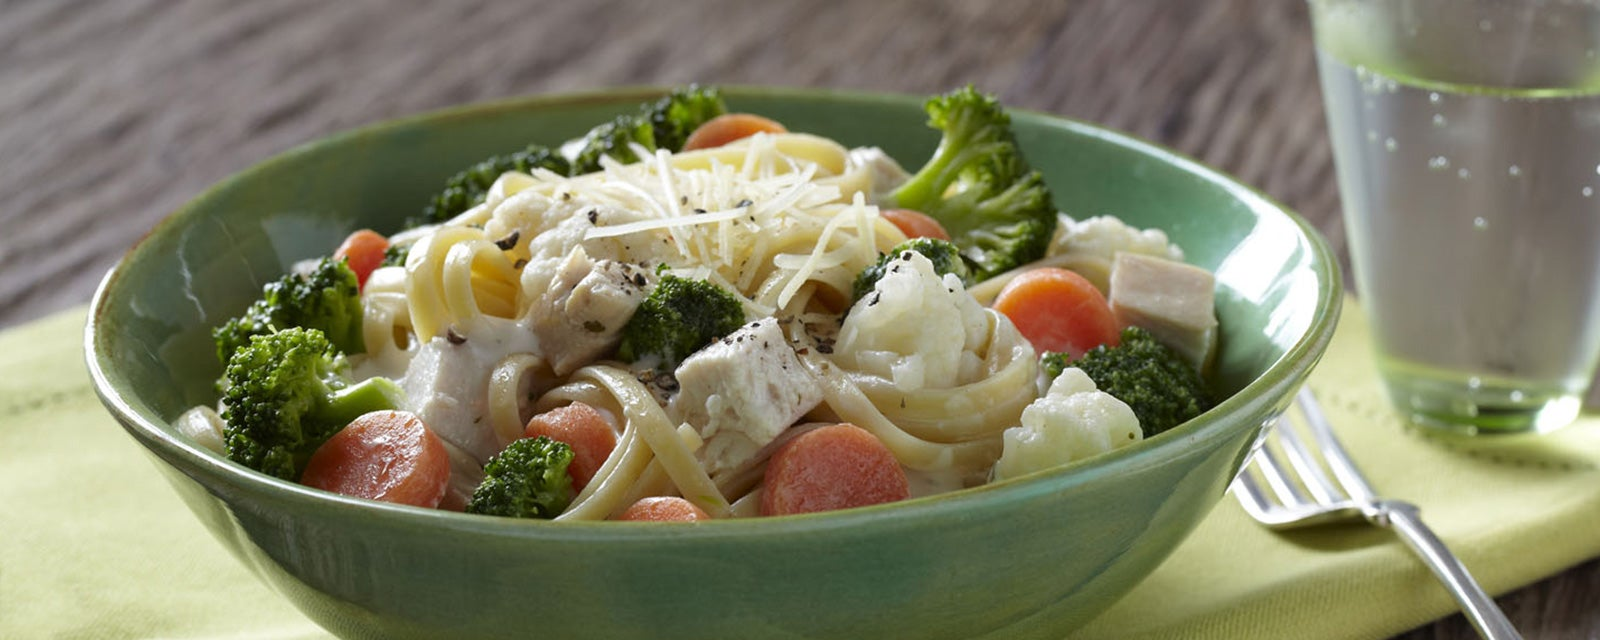 California Ranch Linguine with Chicken